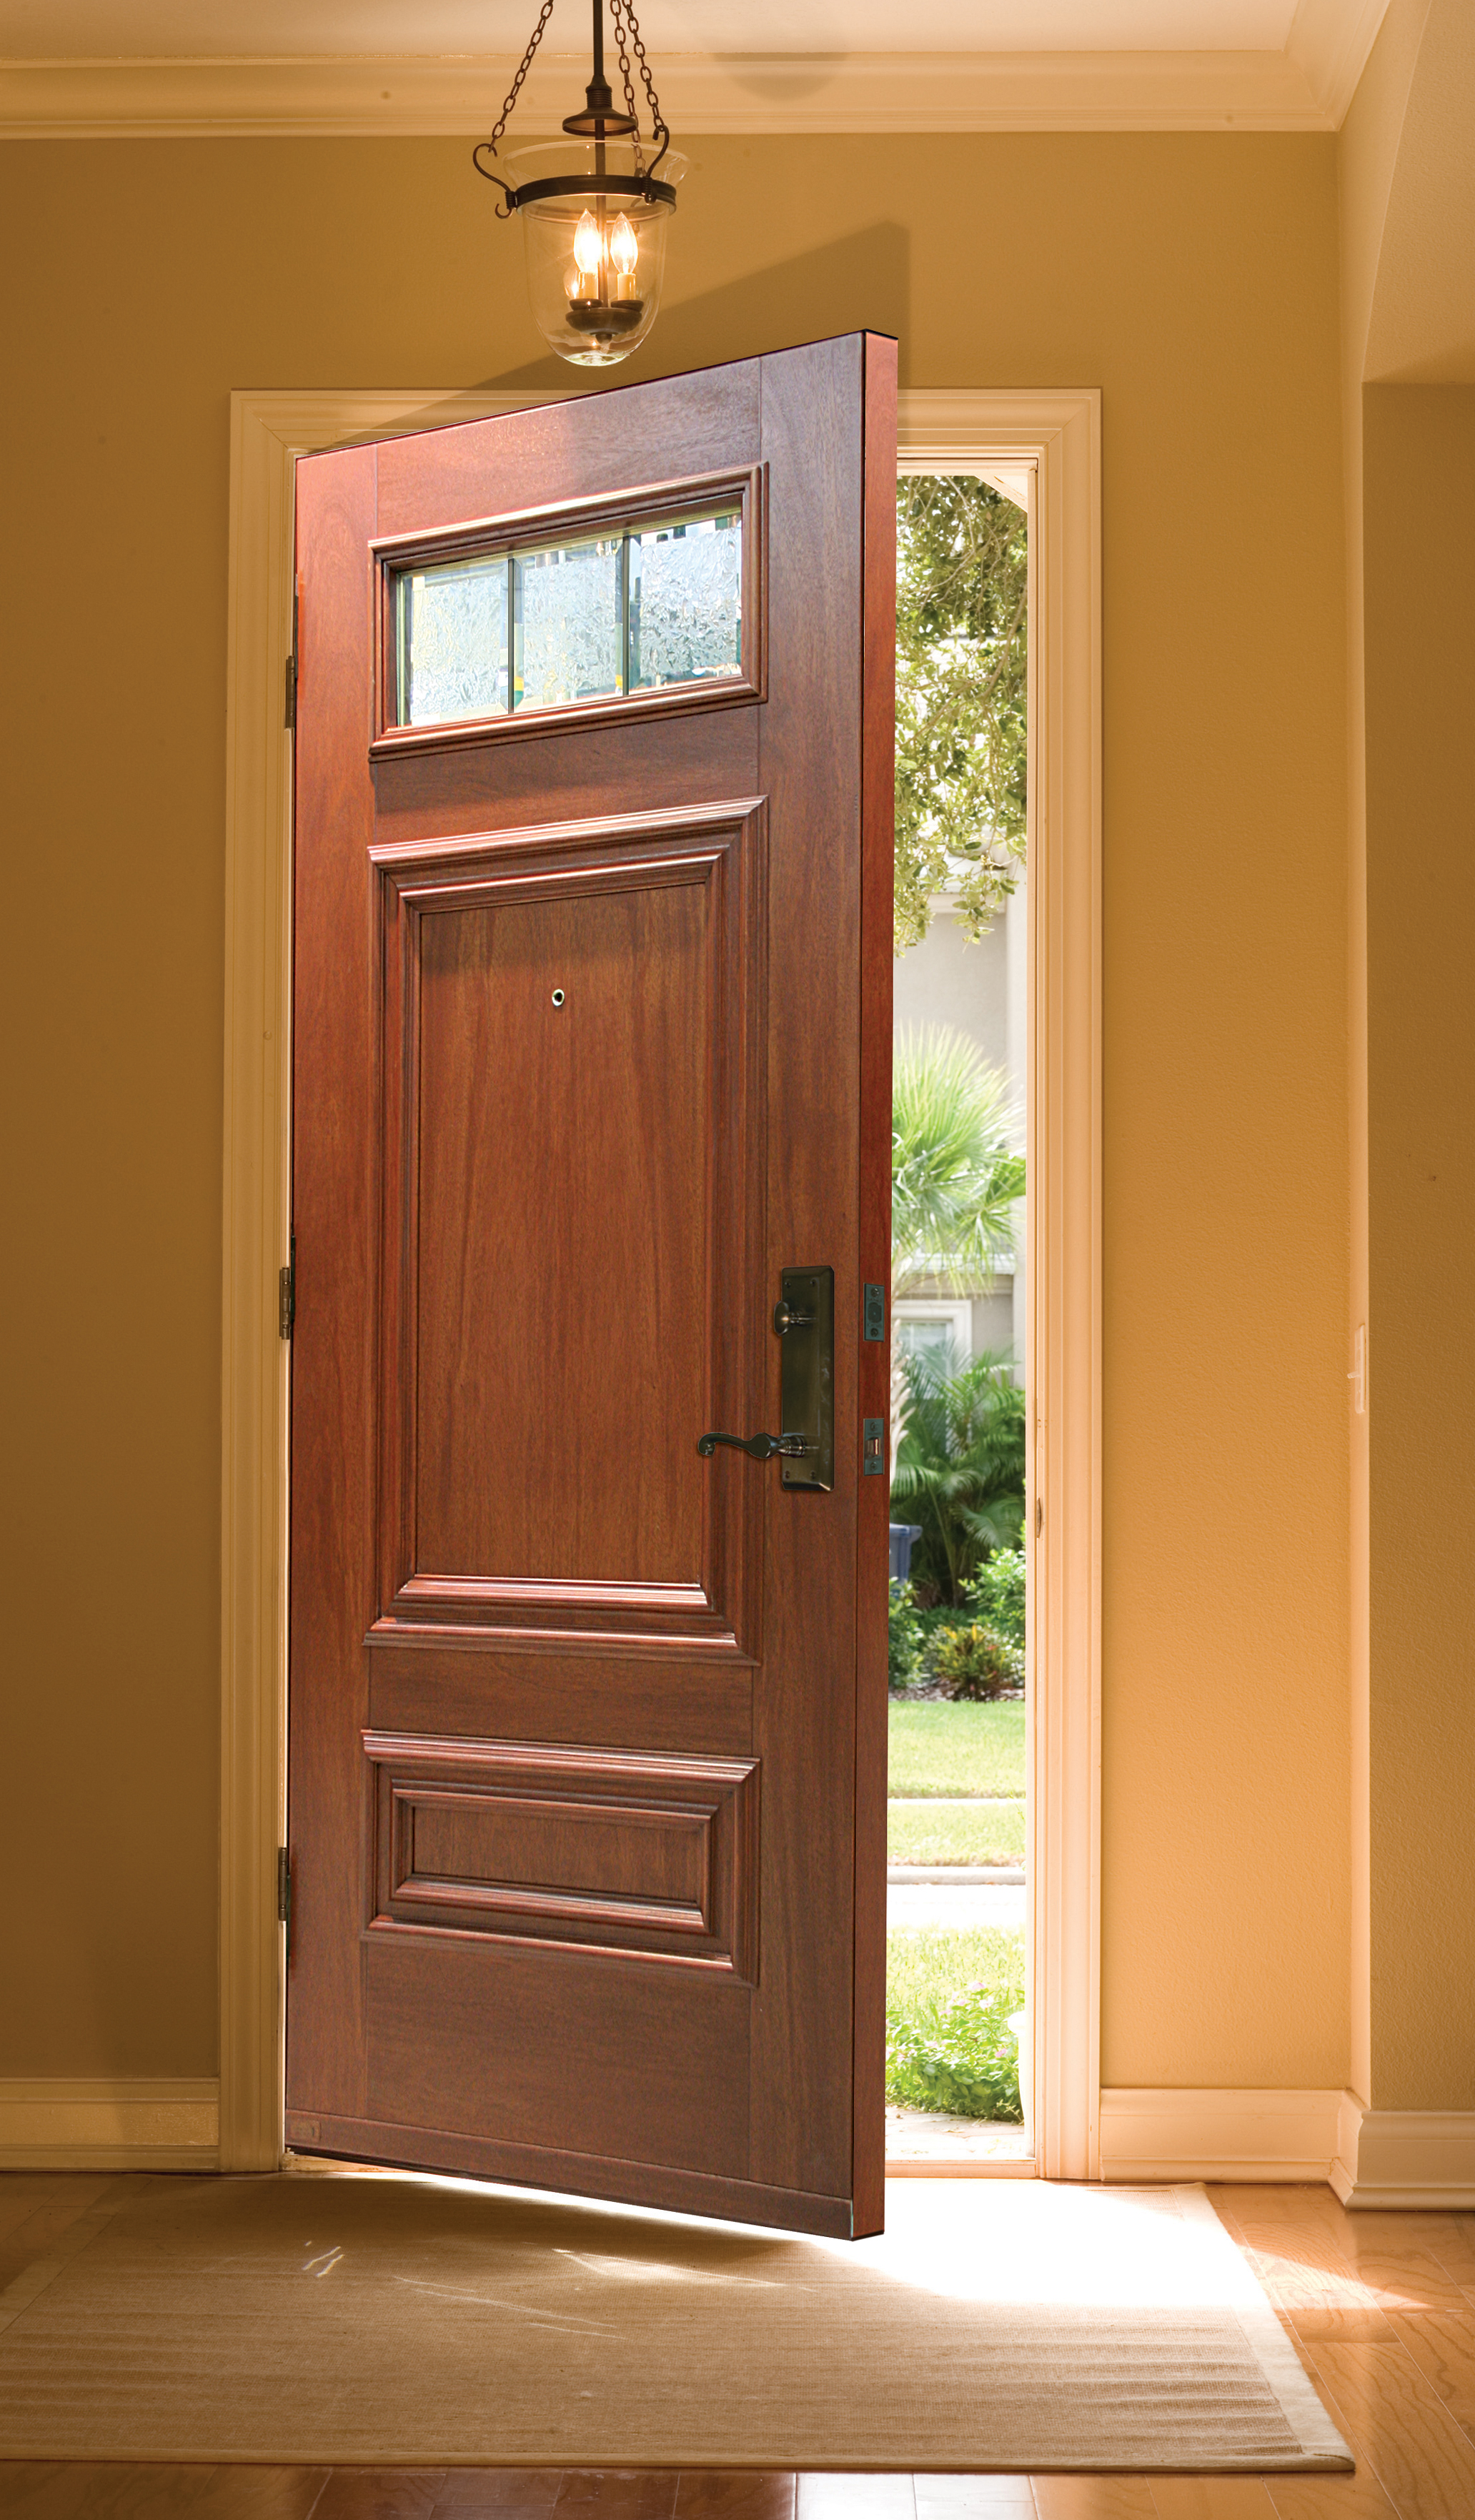 Porte simple avec finition de bois int rieure cerisier for Modele de porte